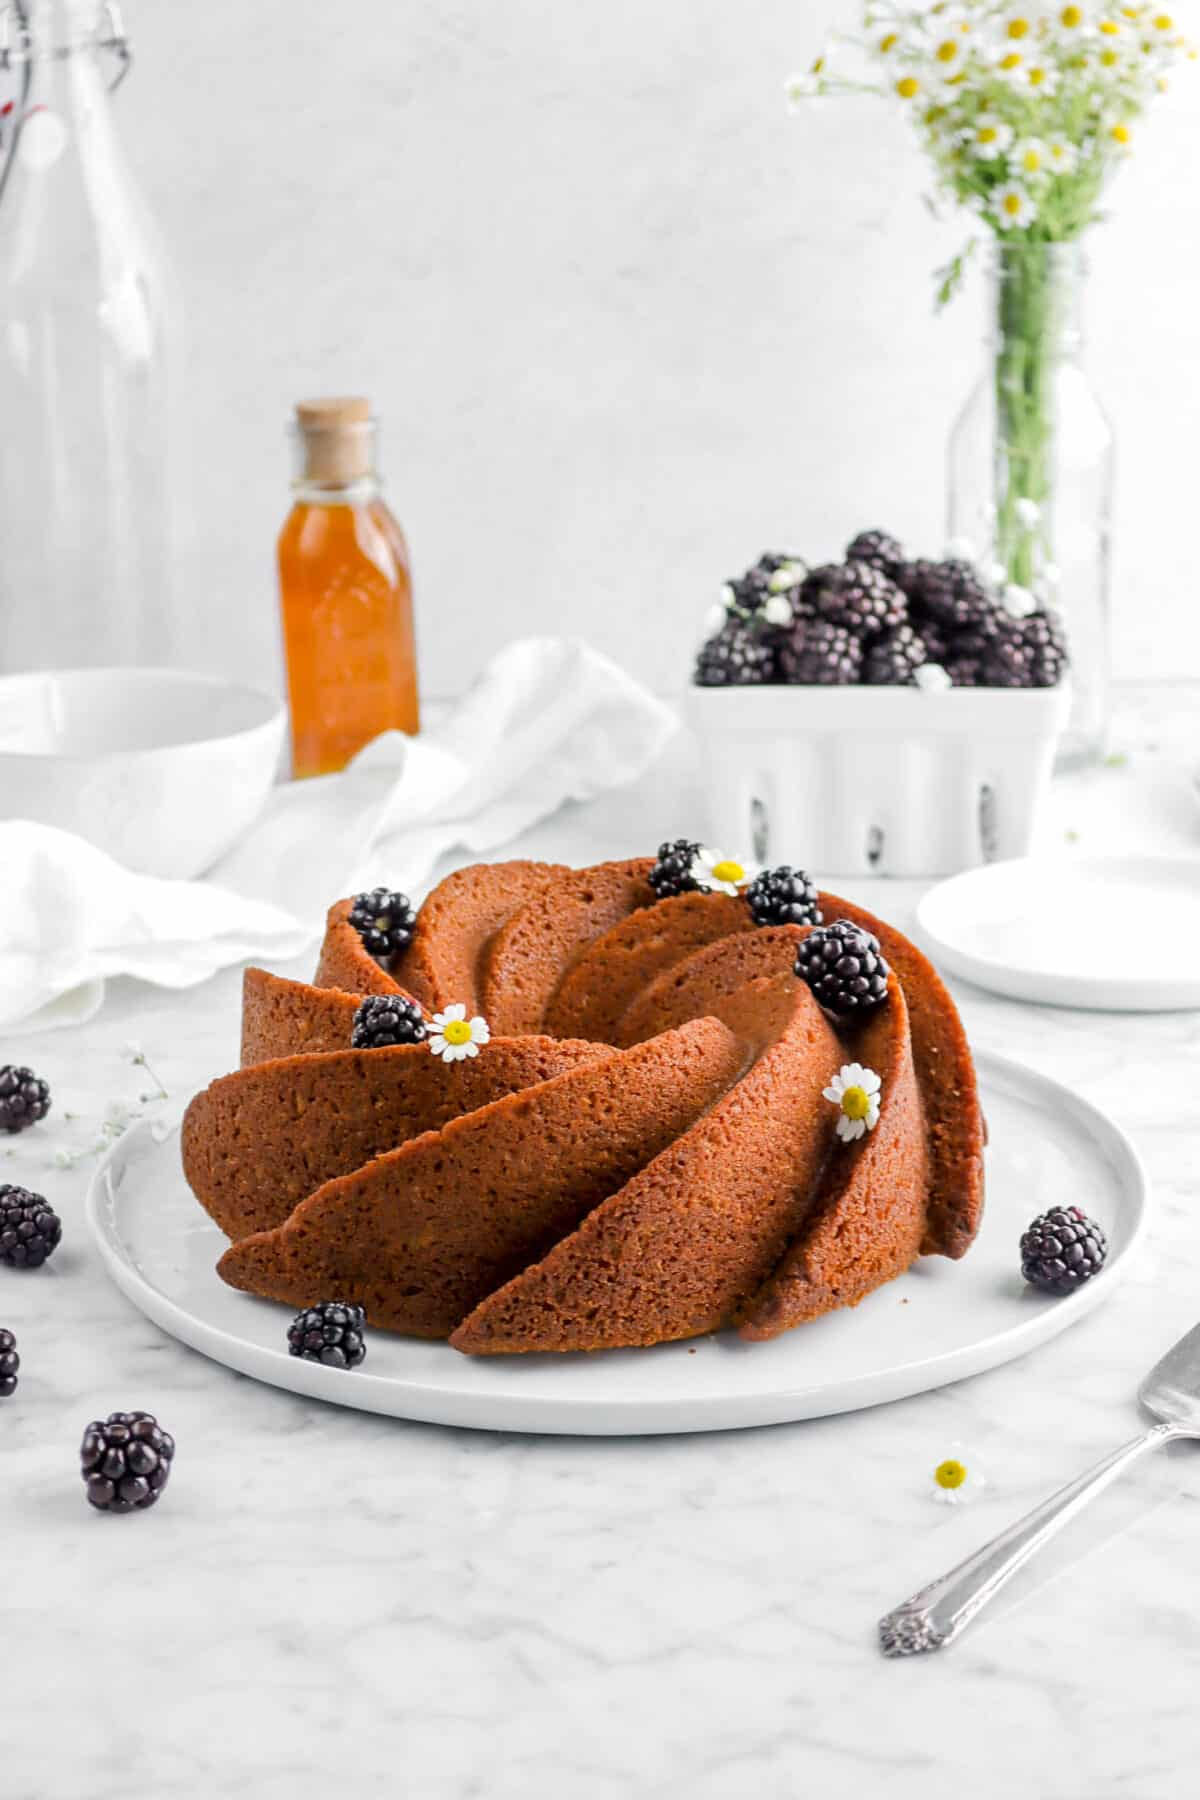 blackberry apple spice cake on white plate with blackberries, flowers, and a jar of honey behind